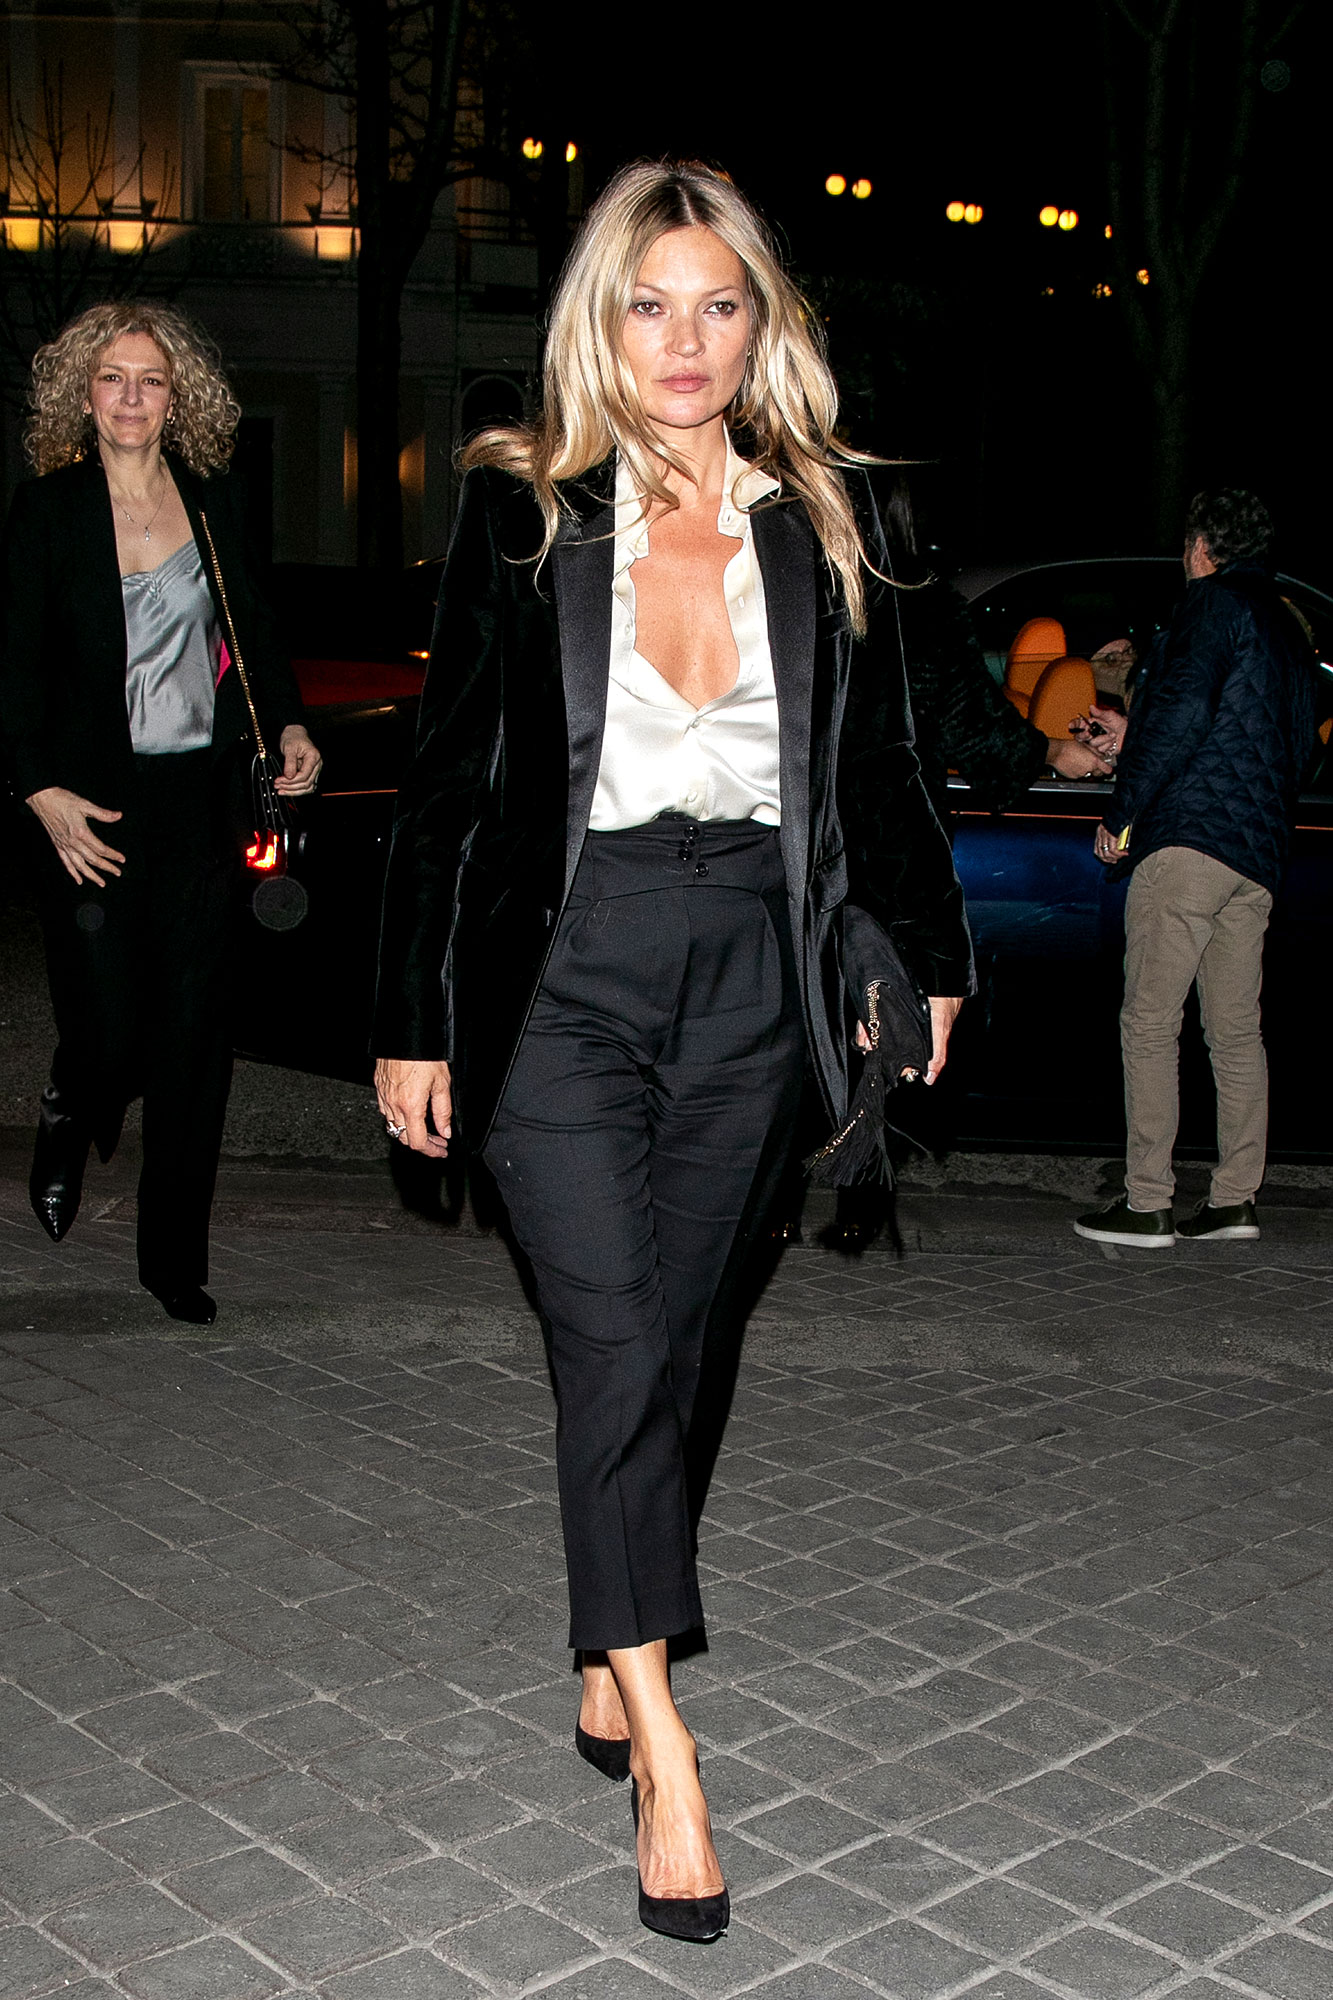 Kate Moss See the Stars' Street Style at Paris Fashion Week - The OG supermodel strutted her stuff in a super sexy pantsuit on her way to the Saint Laurent show on Tuesday, February 26.